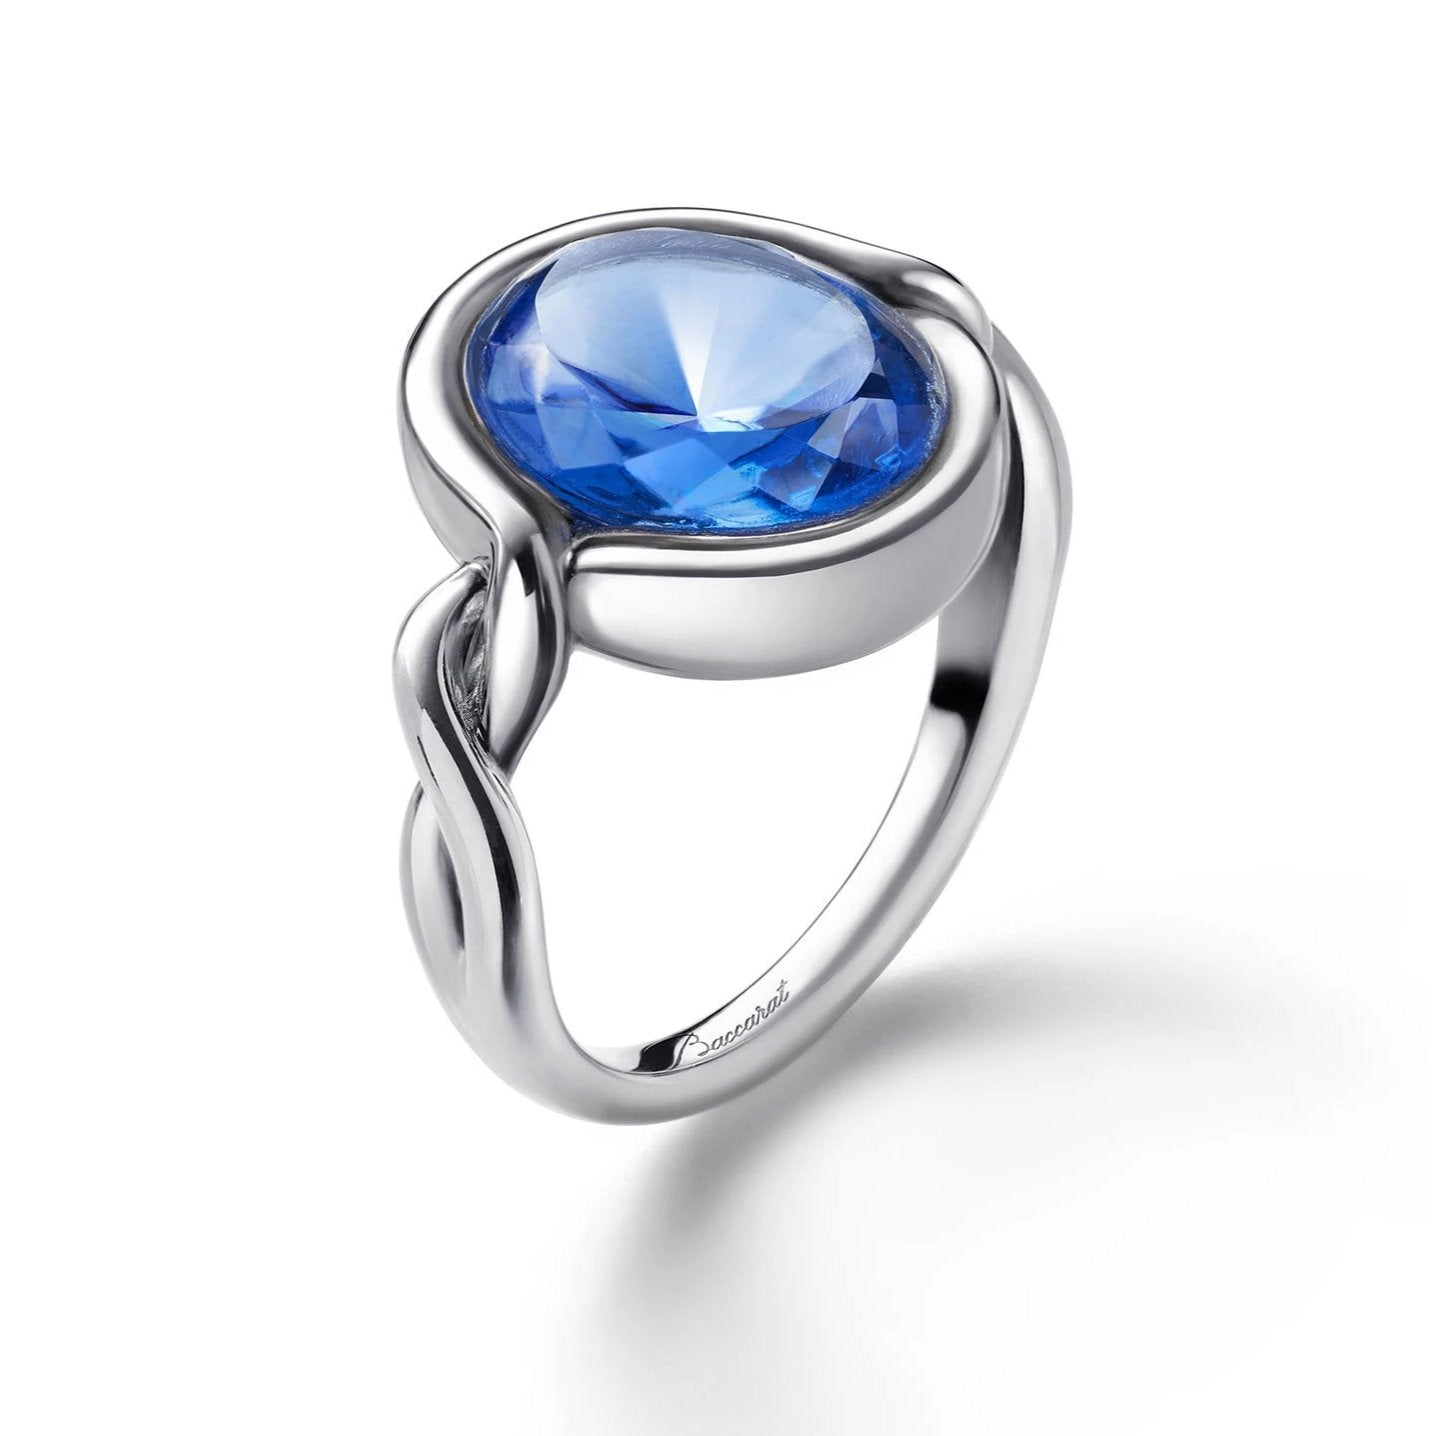 Silver Croise Blue Crystal Ring